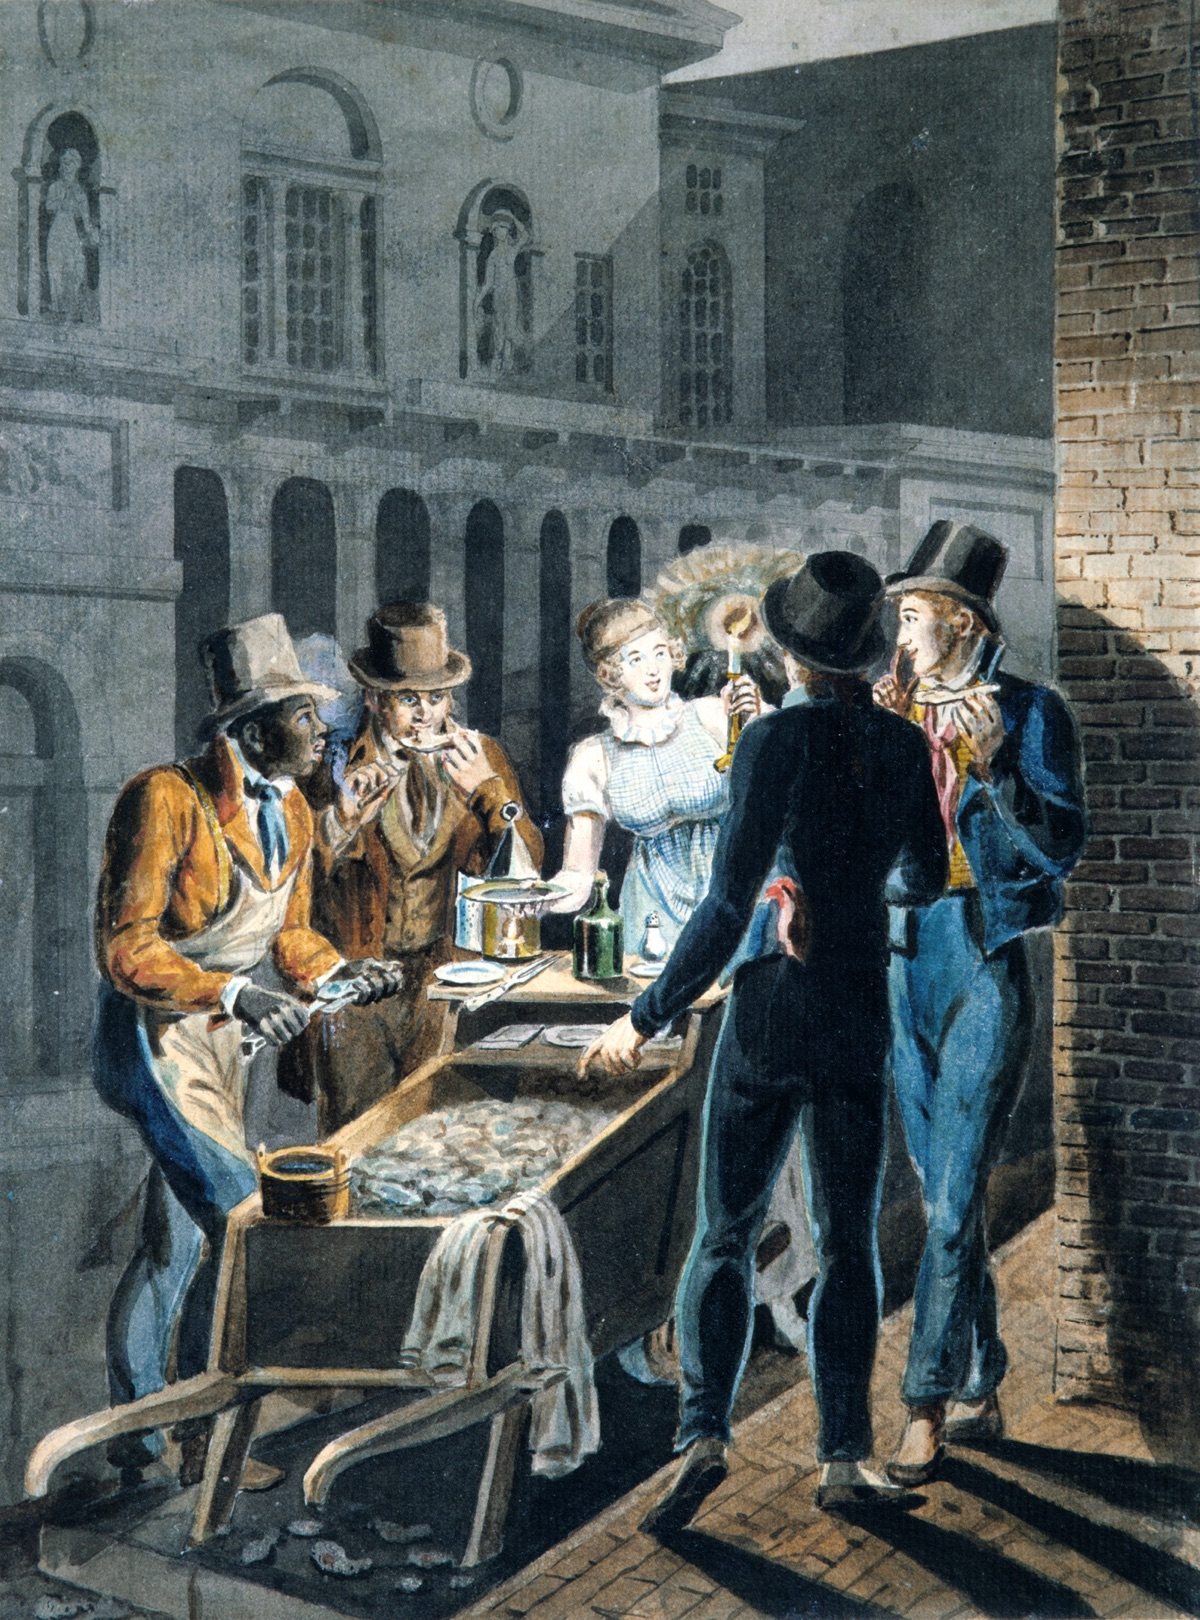 Nightlife_in_Philadelphia—an_Oyster_Barrow_in_front_of_the_Chestnut_Street_Theater_MET_ap42.95.181